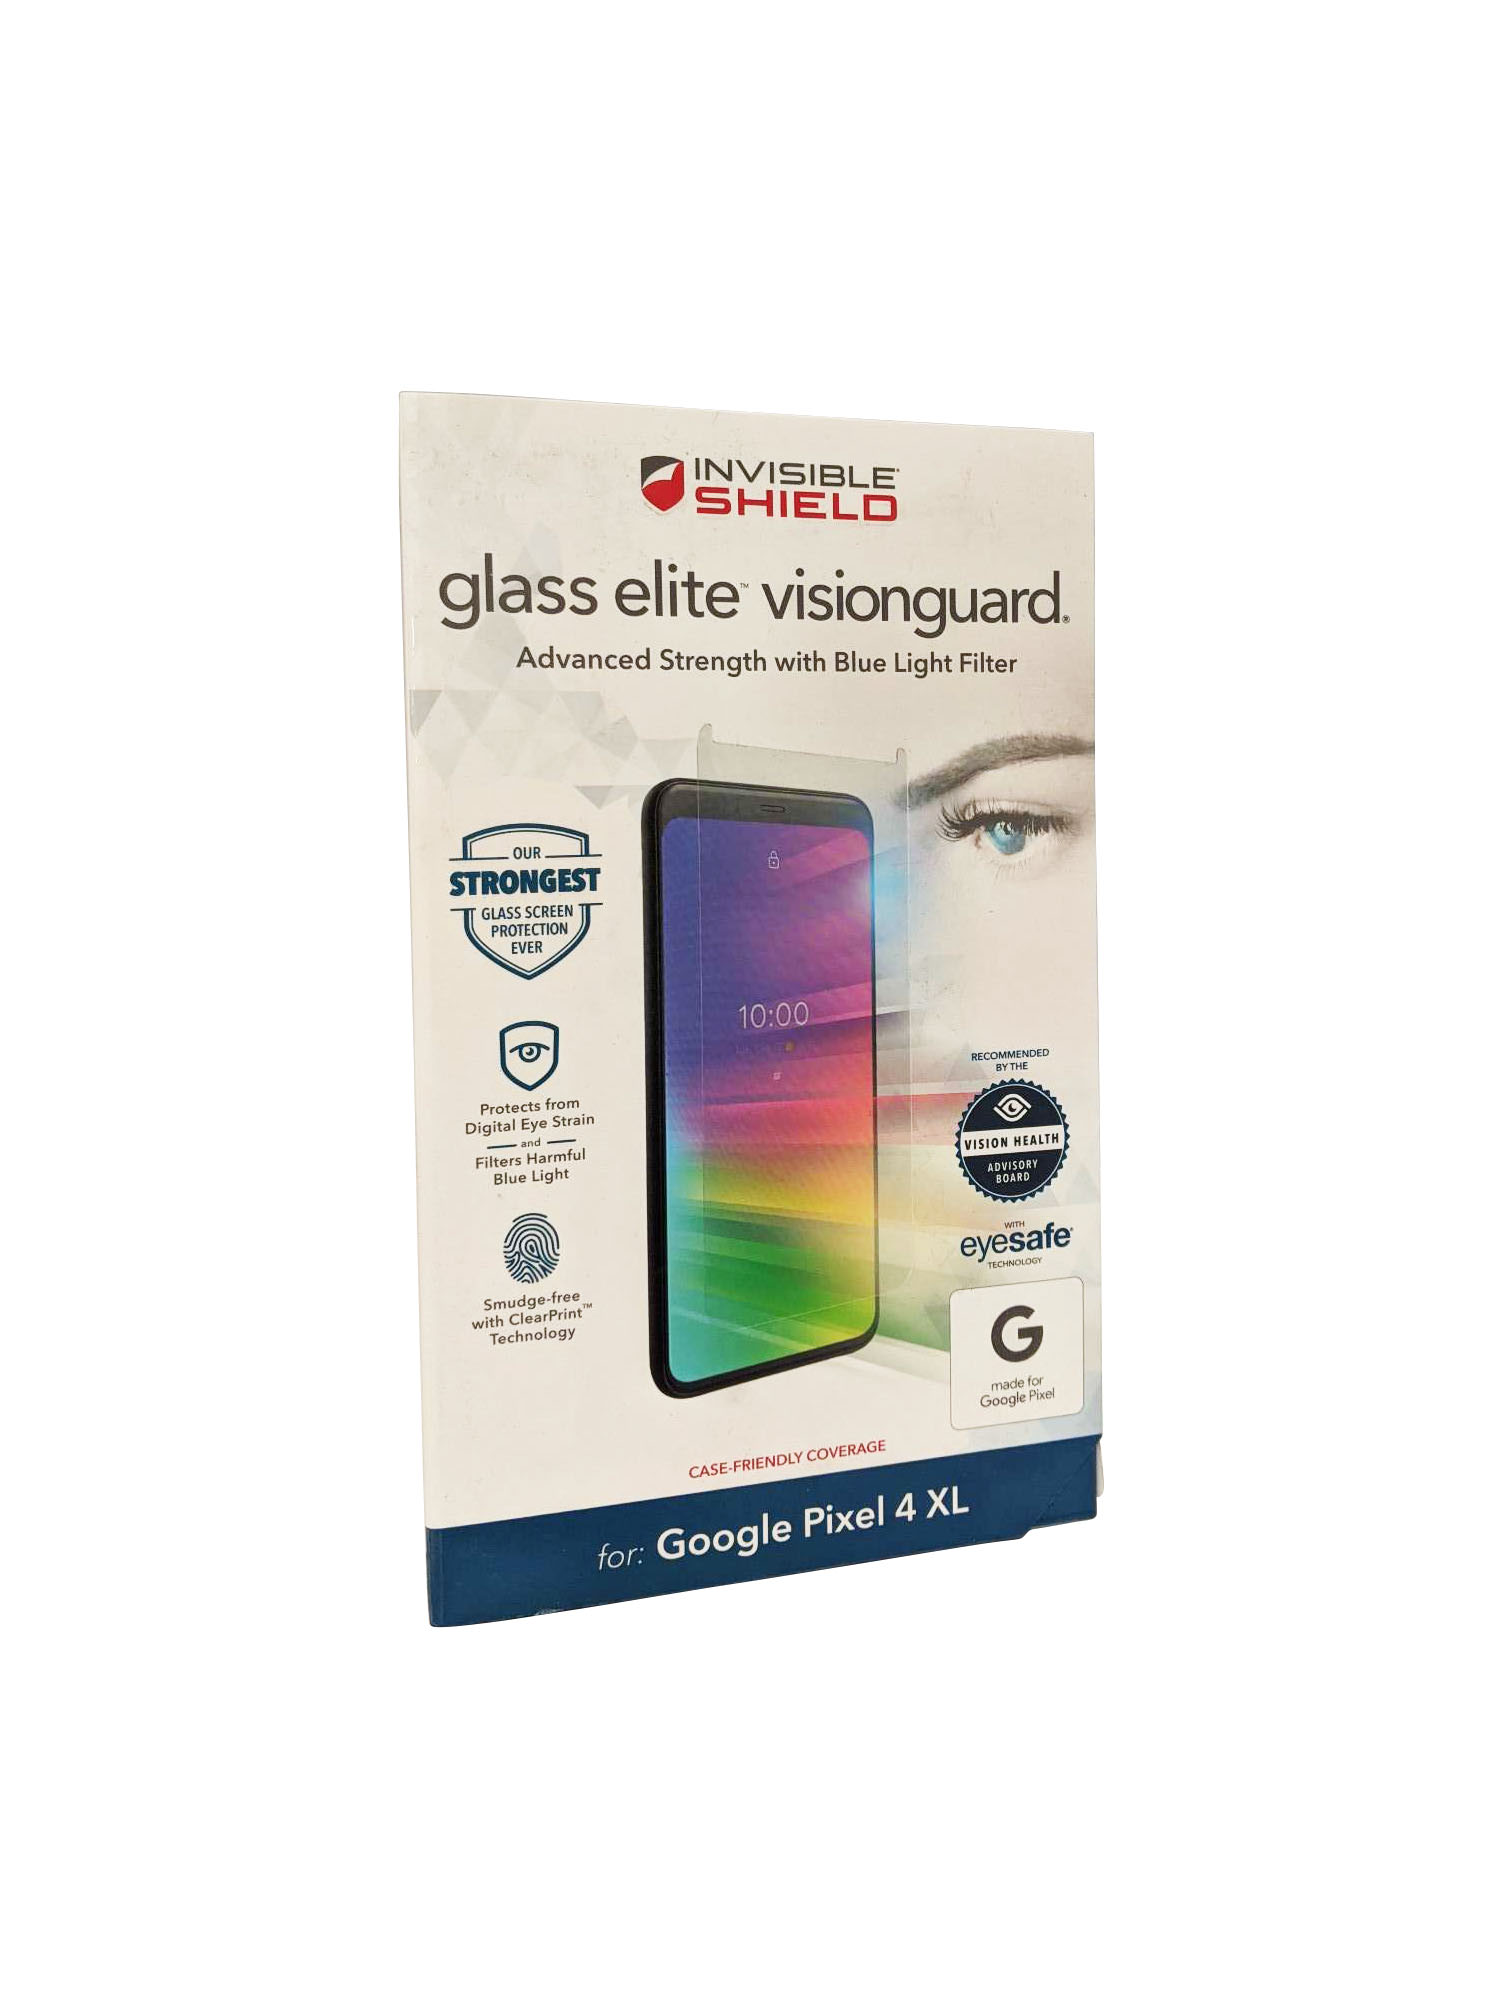 ZAGG for Pixel 4 XL InvisibleShield Glass Elite VisionGuard Screen Protector - Clear